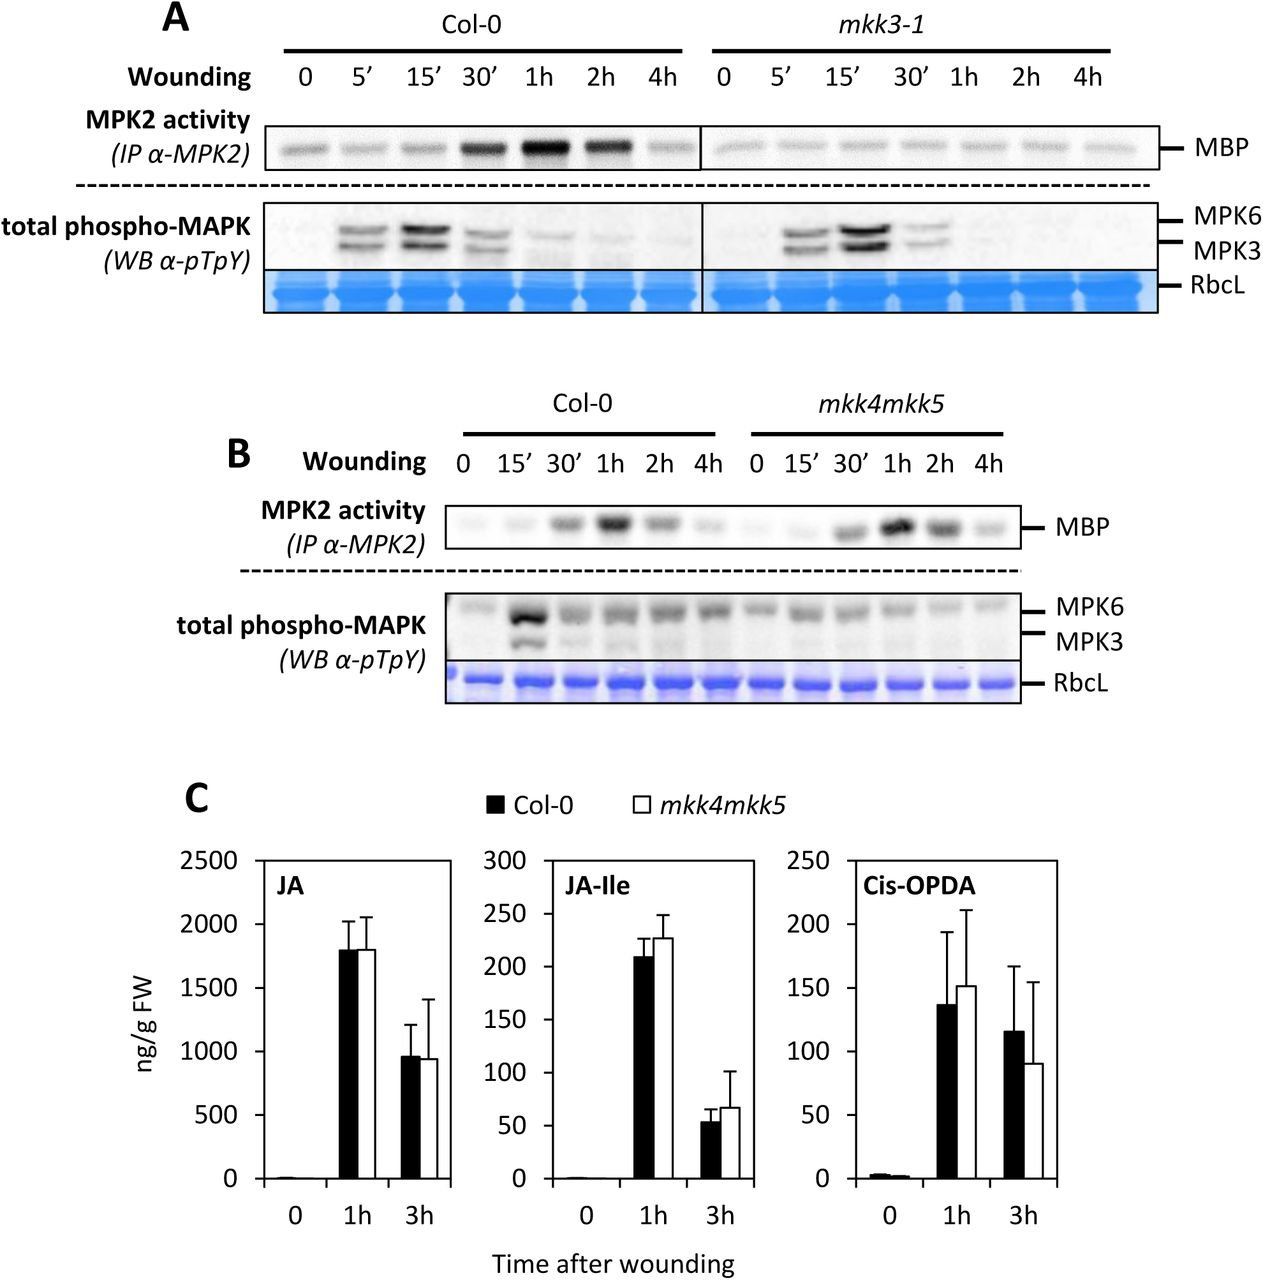 MKK4/5-MPK3/6 are not involved in wound-induced JA production A and B. Kinase activity of MPK2 after immunoprecipitation with an anti-MPK2 specific antibody from Col-0 (A, B) and mkk3-1 (A) and mkk4mkk5 (B) leaves following wounding at indicated times. MPK3/6 activation was monitored by western-blot using antibody raised against the phosphorylated form of ERK2 (anti-pTpY). Equal loading is controlled by Coomassie staining. C. JA, JA-Isoleucine and Cis-OPDA contents in wounded leaves of Col-0 and mkk4mkk5 . Values are mean±SE of 3 biological replicates.